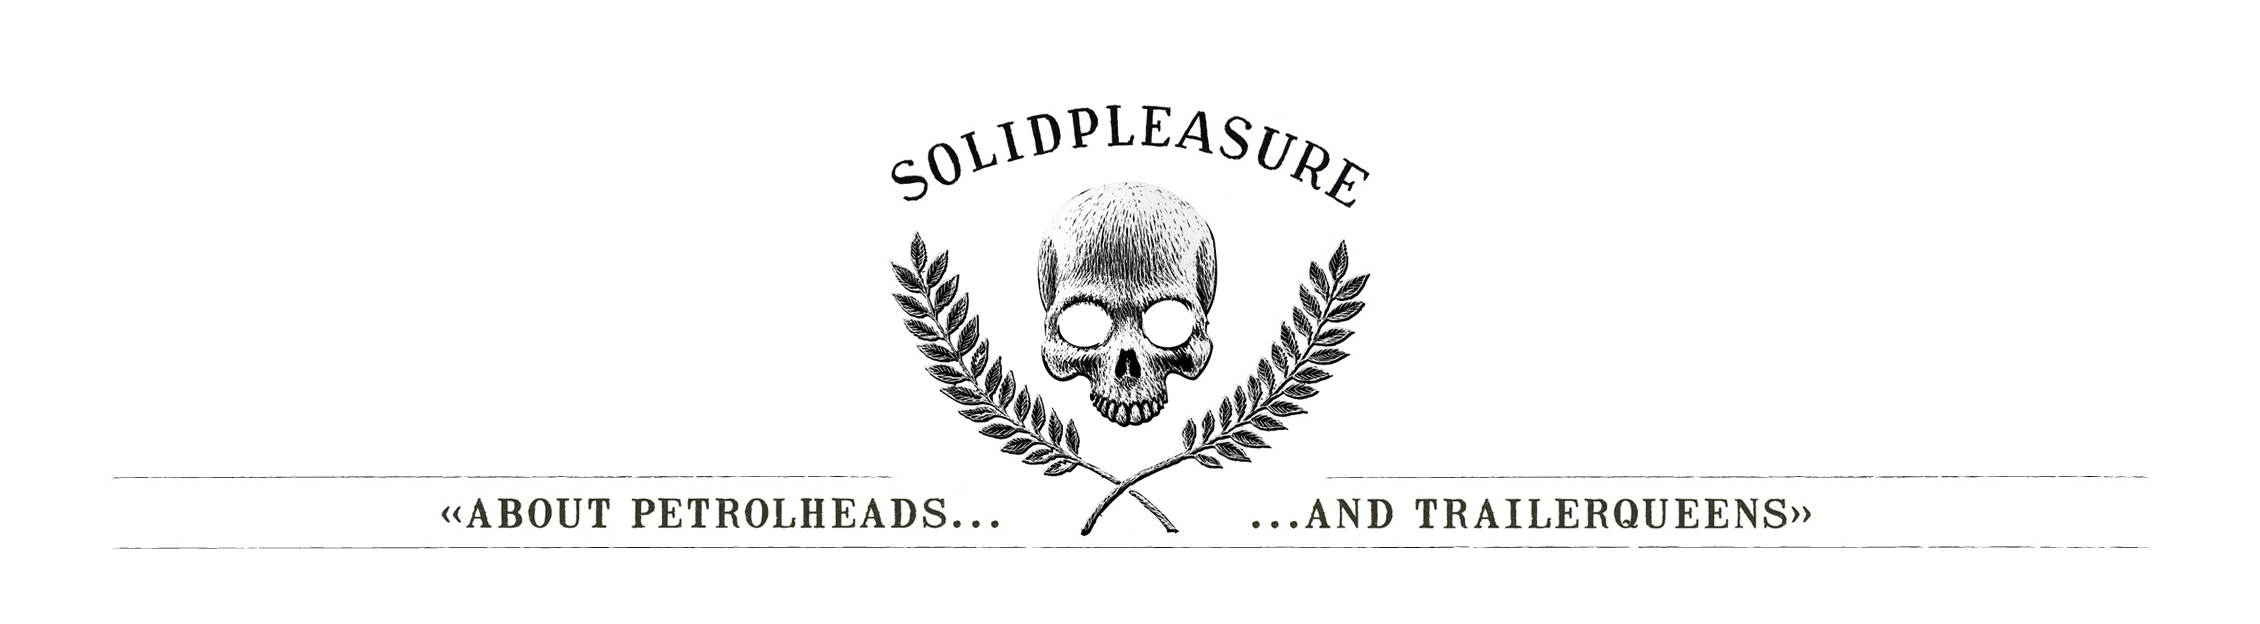 solidpleasure